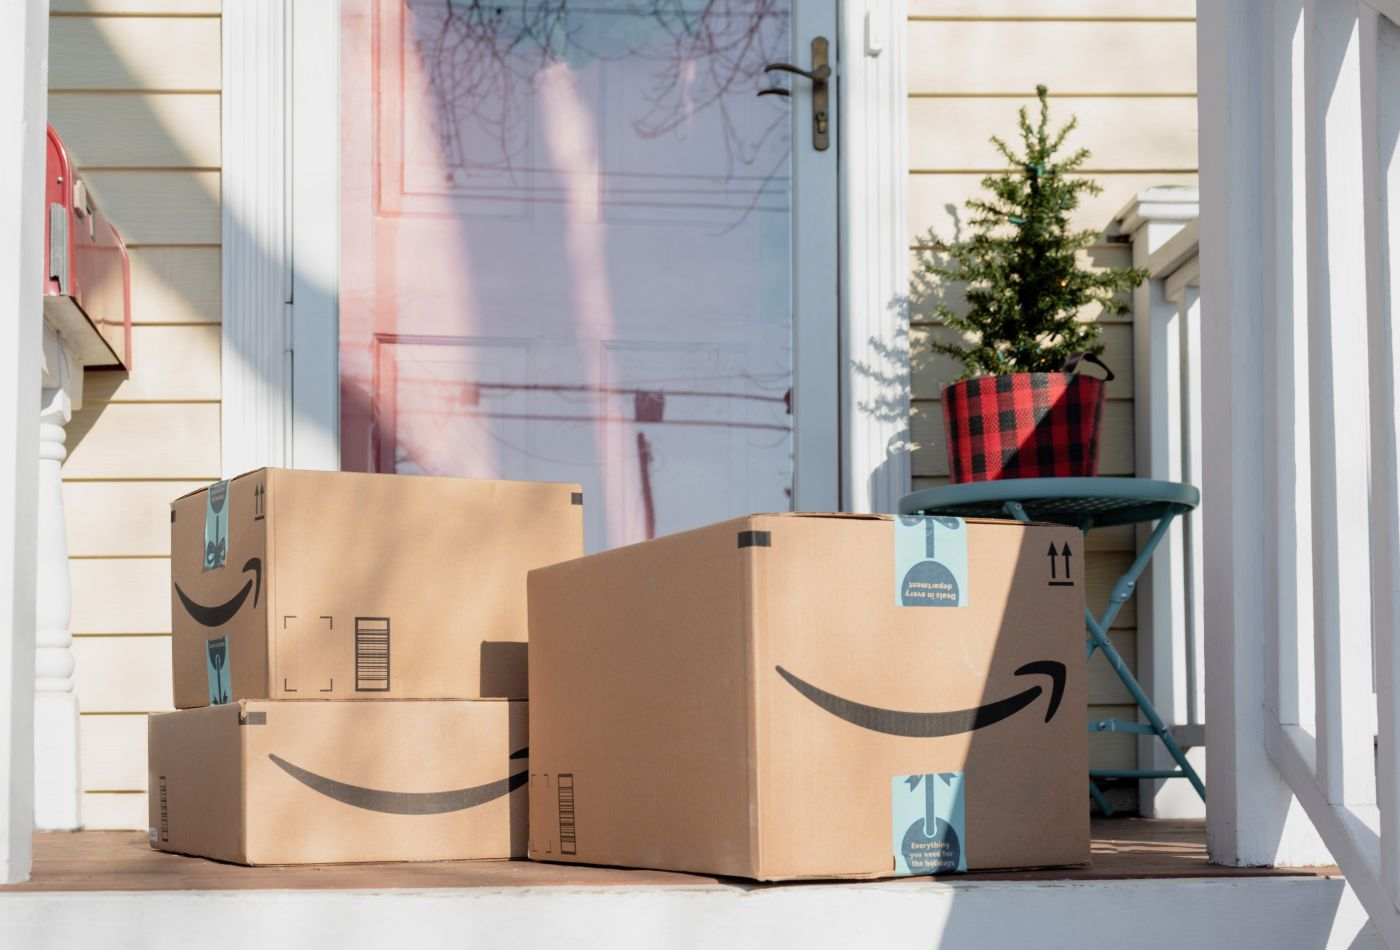 105910365-1557774083962holiday-packages-delivered-to-the-front-porch-online-shopping-retail-christmas-shopping_t20_1qxzpn.jpg